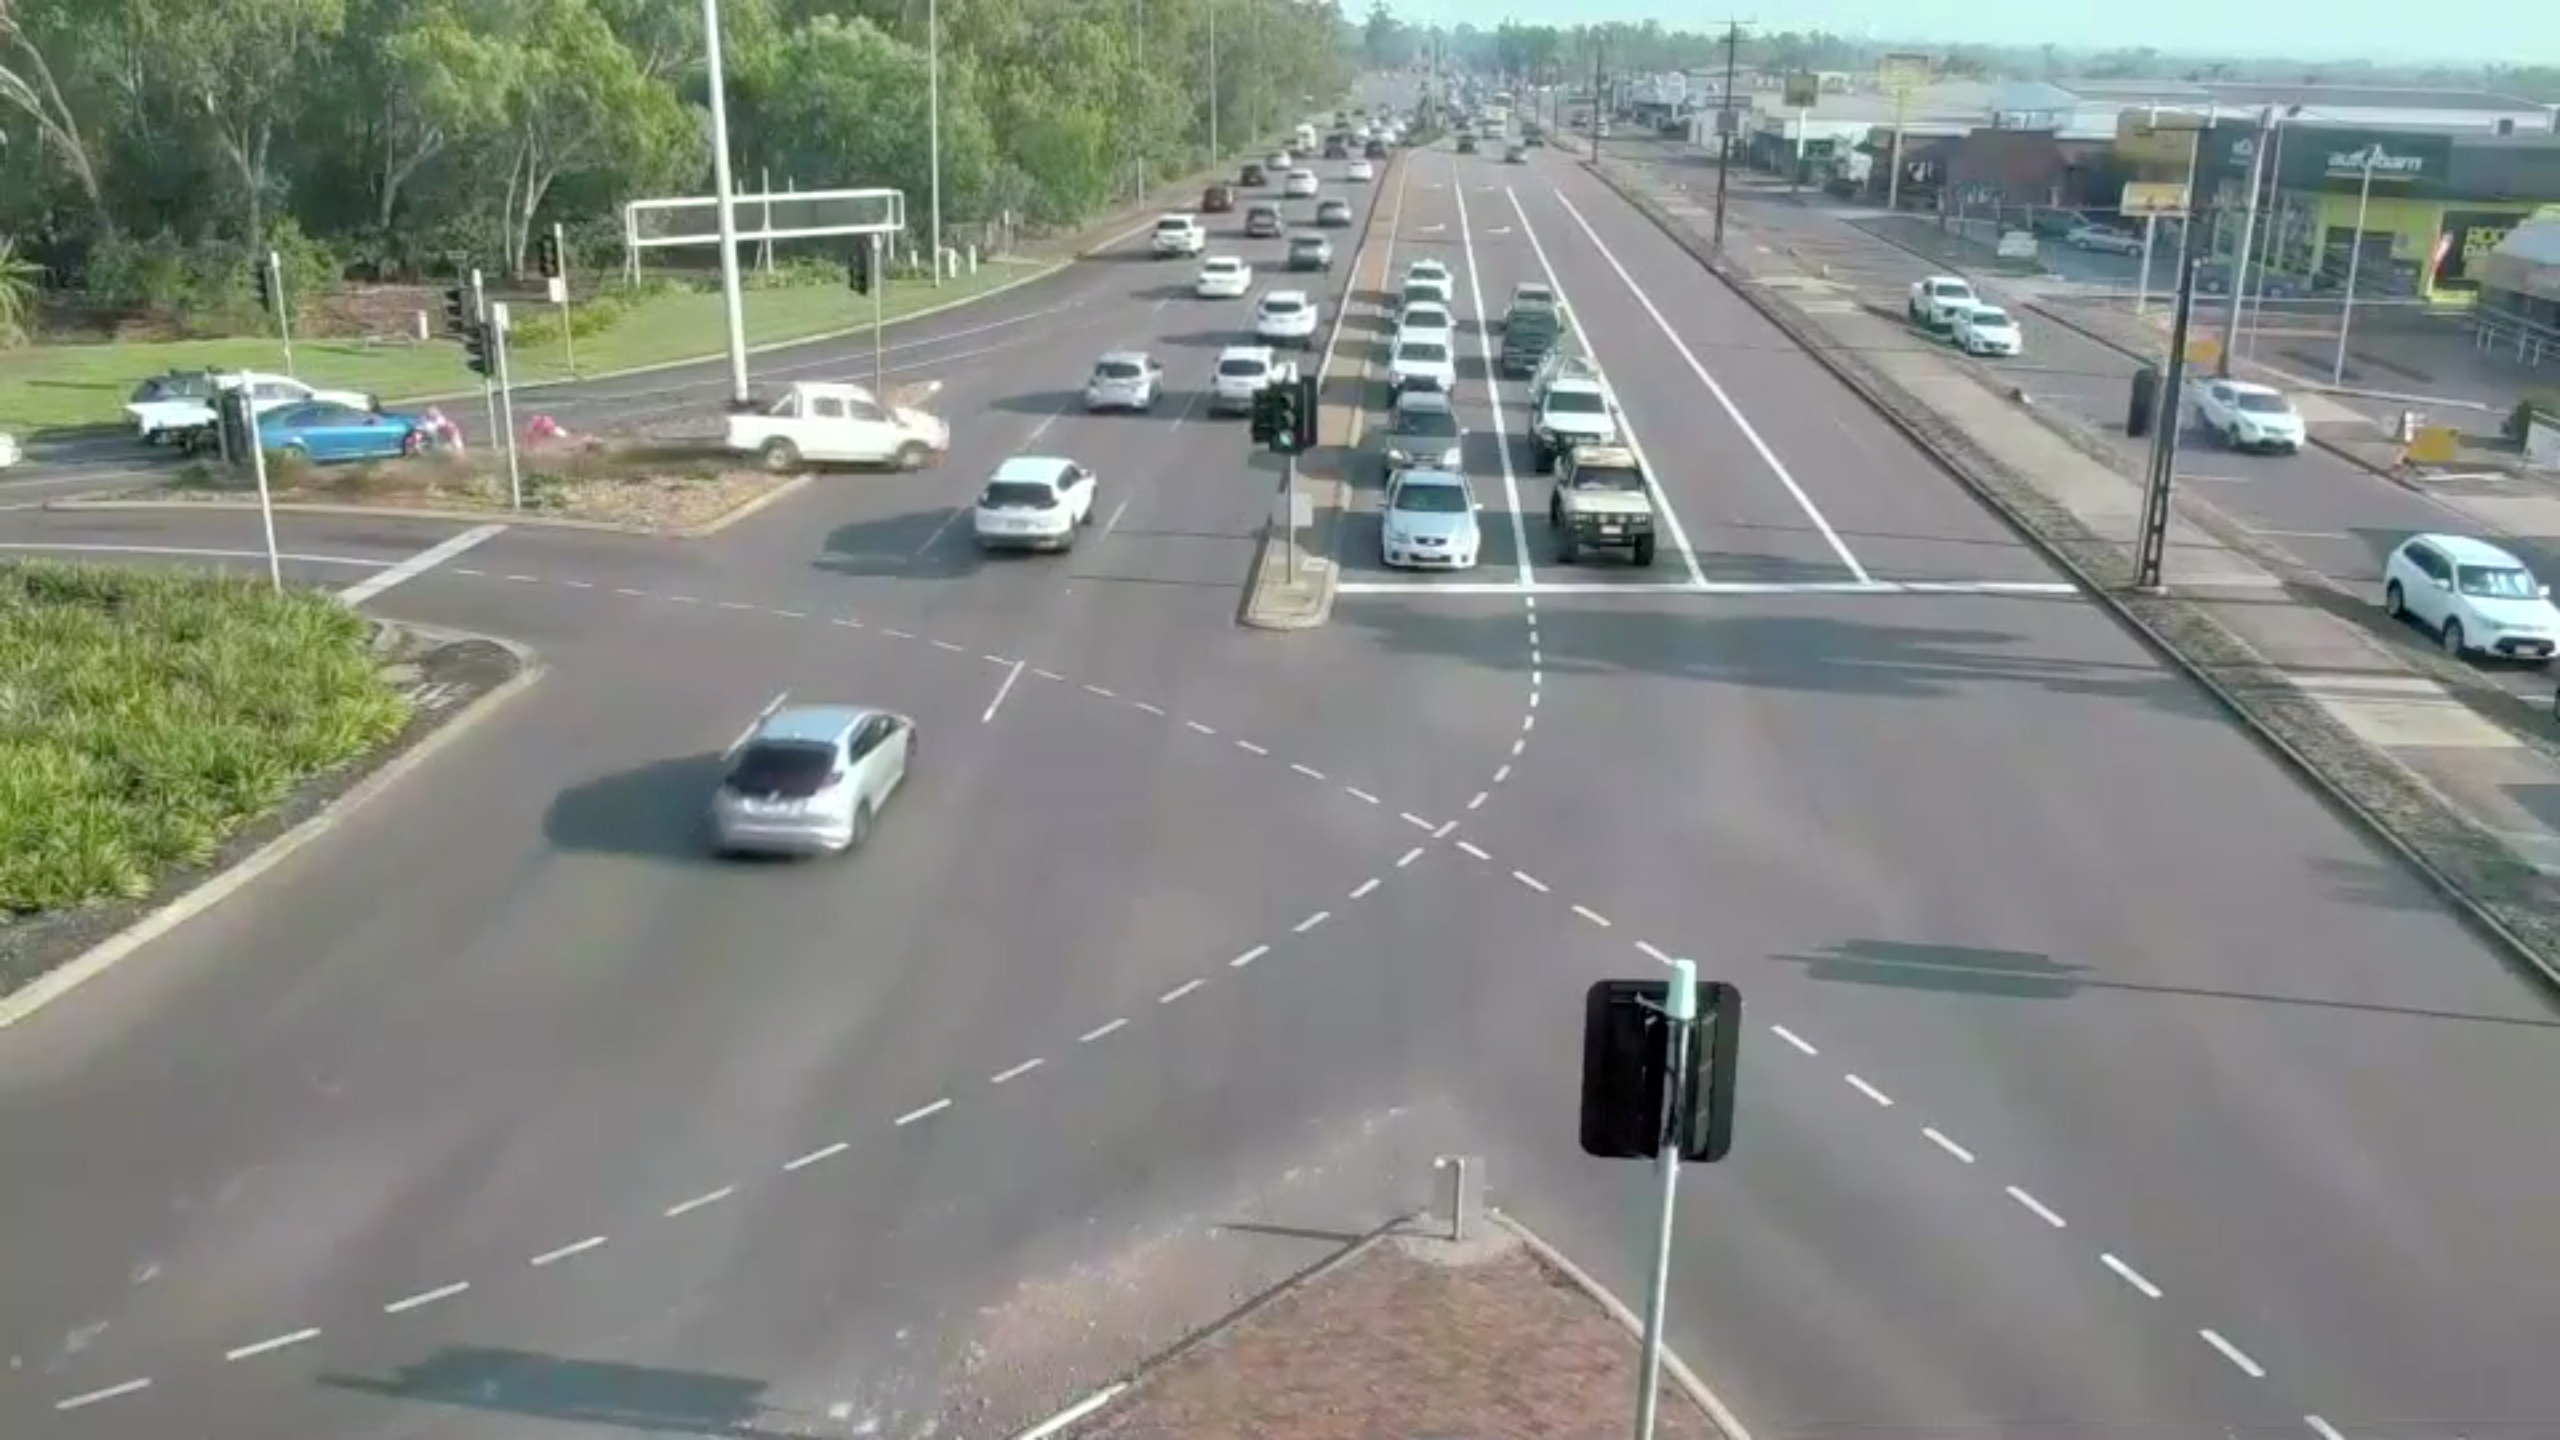 A white Toyota Hilux (L, near post) is seen speeding down horizontally across lanes of traffic in Darwin, Australia, September 23, 2021, in this still image taken from video obtained from social media. According to police, the passengers in the car were conveyed to a hospital with non-life -threatening injuries. Video taken September 23, 2021. Mandatory credit NORTHERN TERRITORY POLICE, FIRE AND EMERGENCY SERVICES/via REUTERS